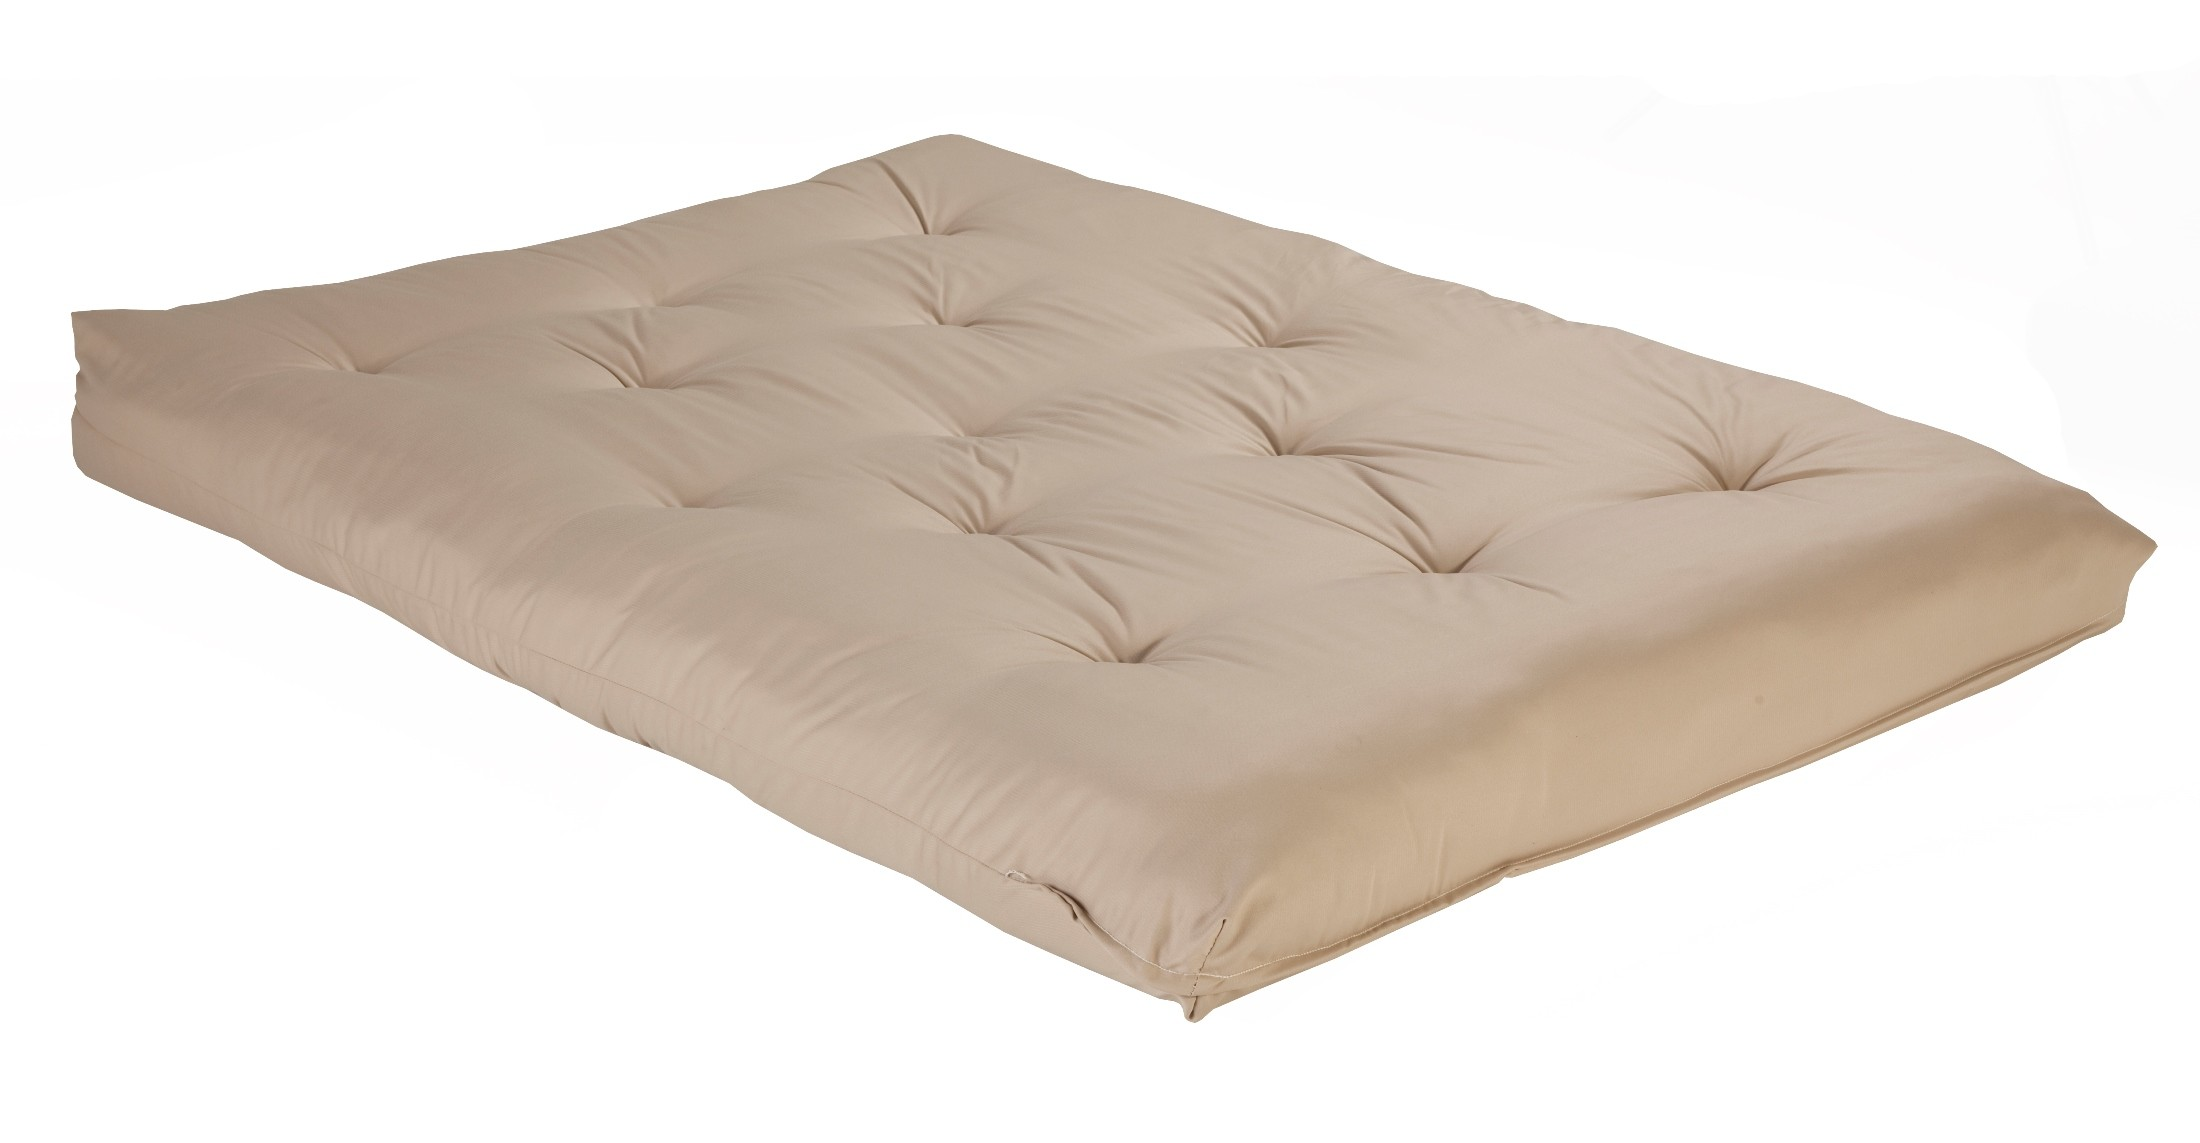 Khaki full size futon mattress from fashion bed group for Full bed with mattress included